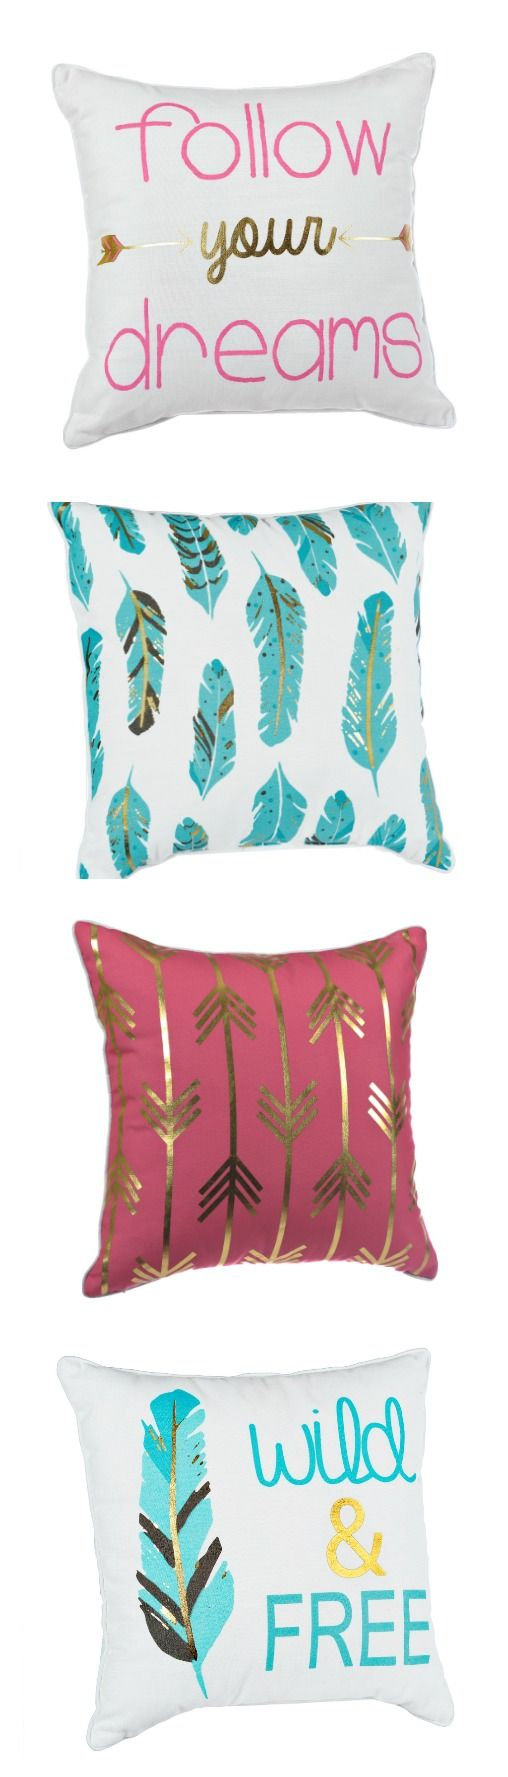 """Comfort is important. But why not have comfort AND style this back-to-school season? Browse our decorative throw pillows to find your perfect combo and add a touch of personality to your dorm room. Explore styles from turquoise feathers to gold arrows, from """"Follow Your Dreams"""" to """"Wild & Free."""""""